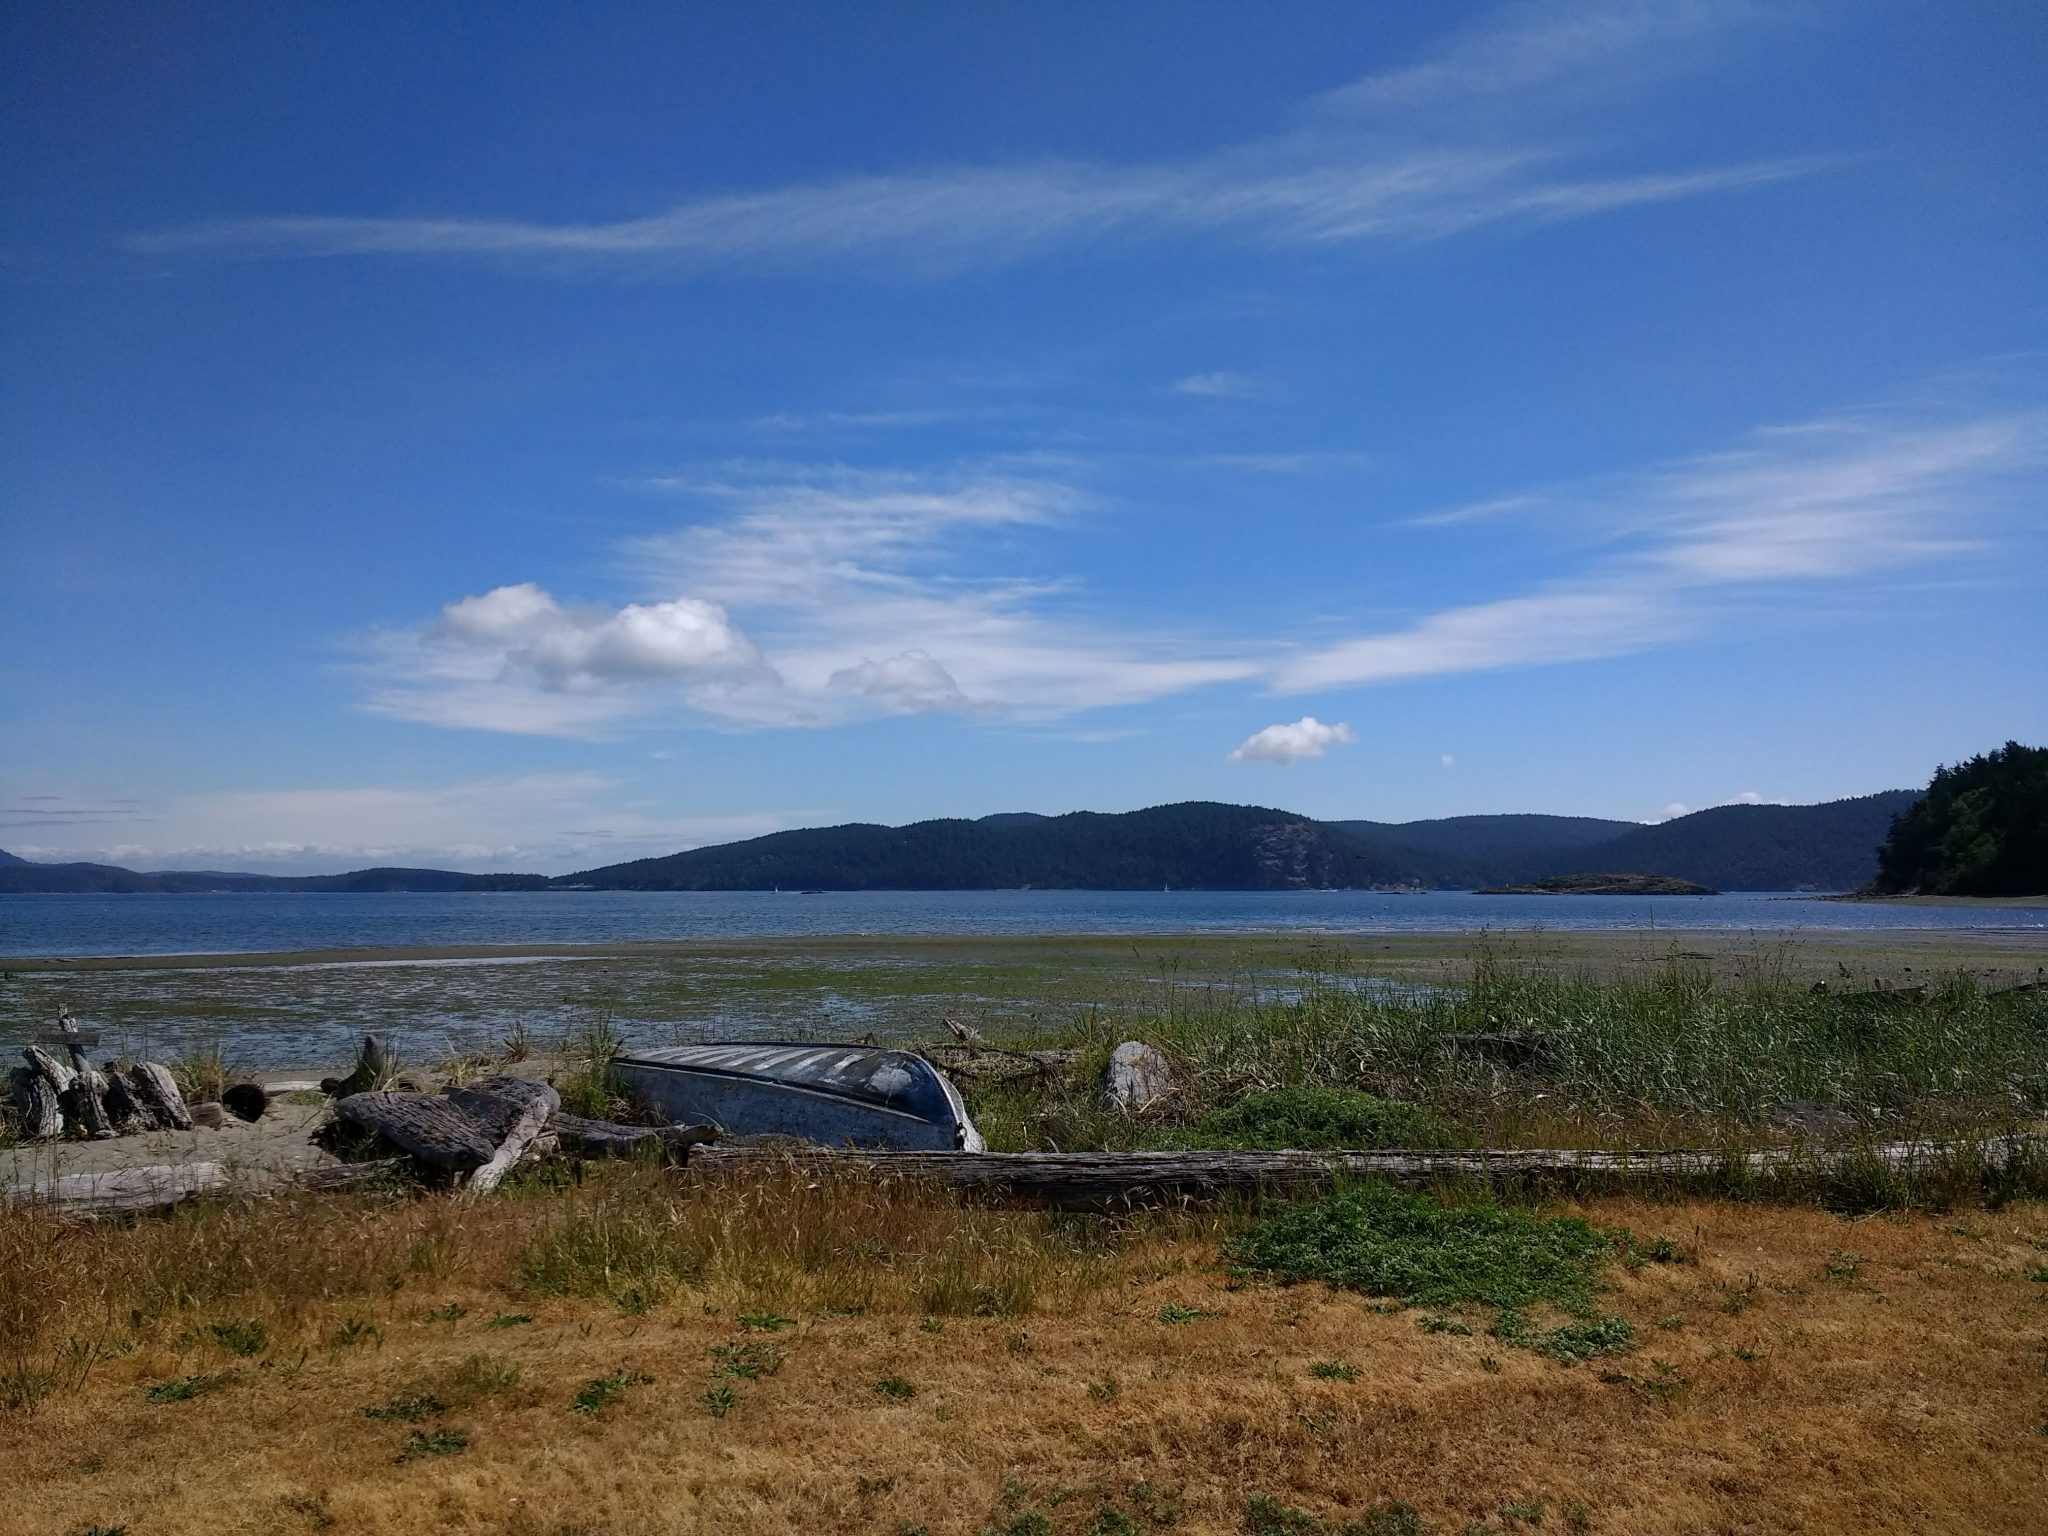 Lopez Island bike camping at Spencer Spit State Park. There is a grassy spit in the foreground wtih a canoe, tideflats and water behind. Forested islands are in the background on a sunny day